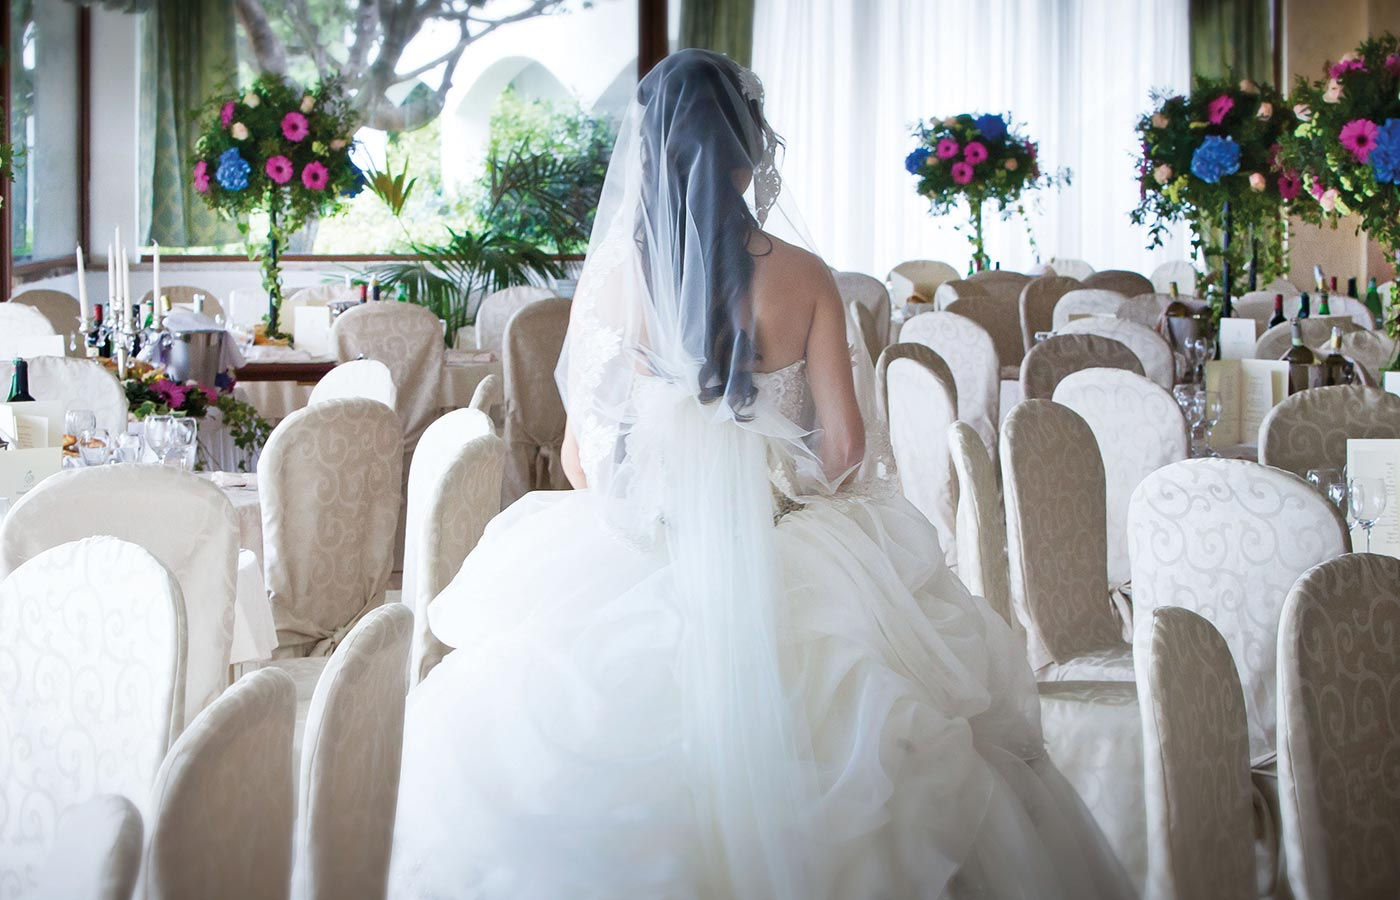 Fairy tale wedding and location at the Hotel Pulicinu in Baja Sardinia